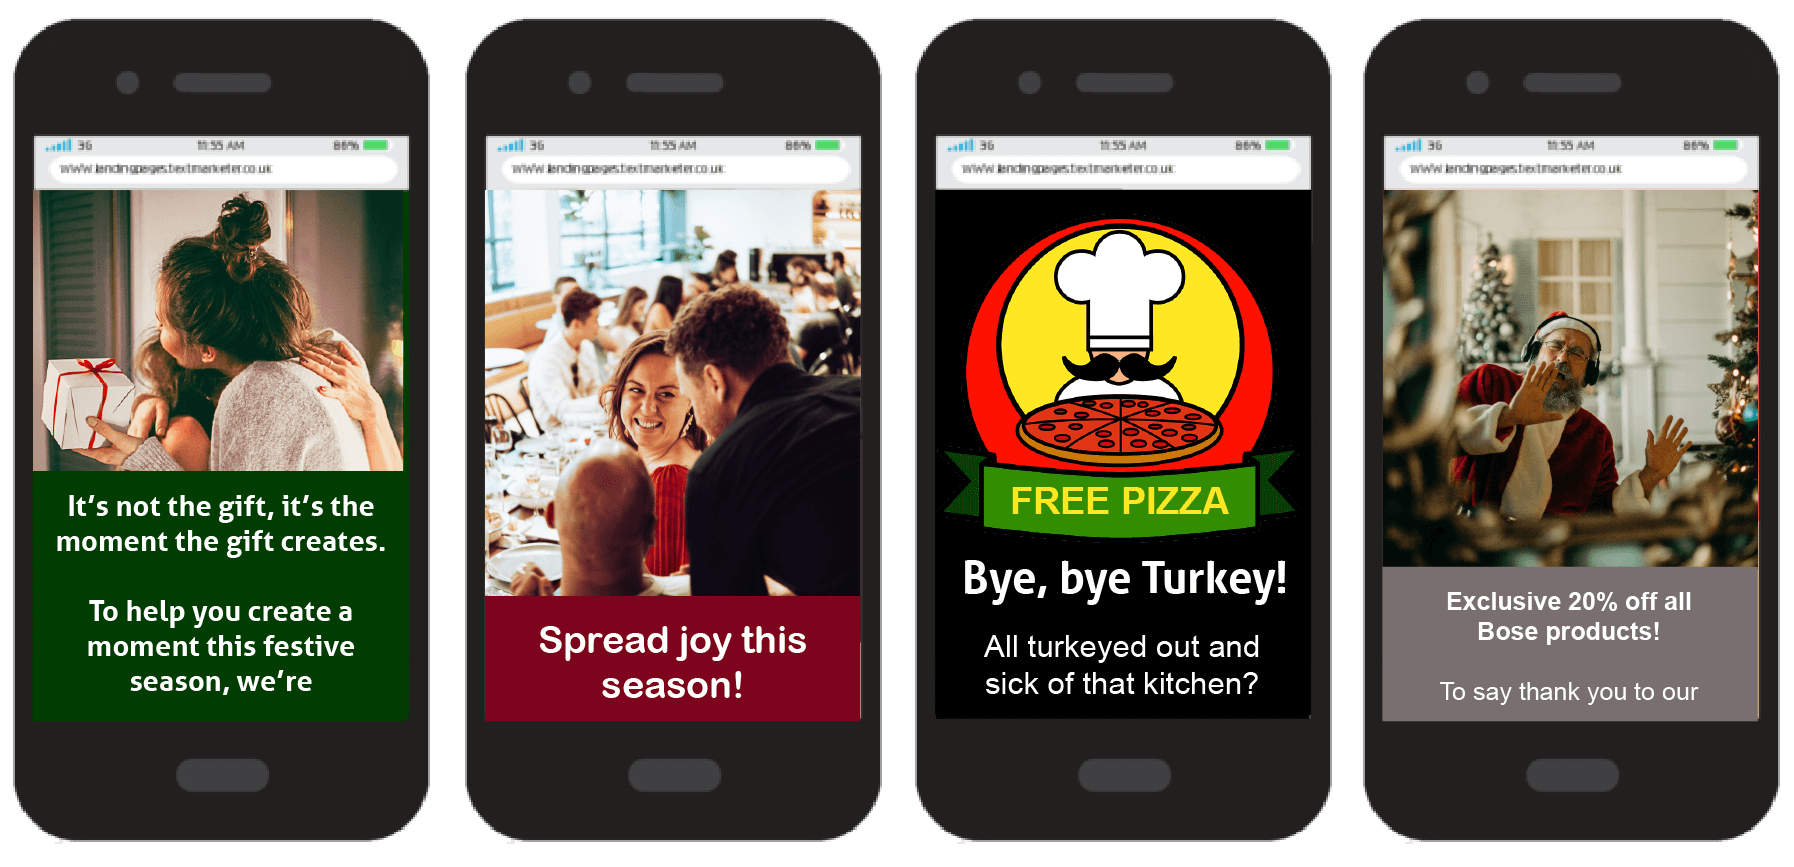 Examples of SMS Web Pages for the festive season